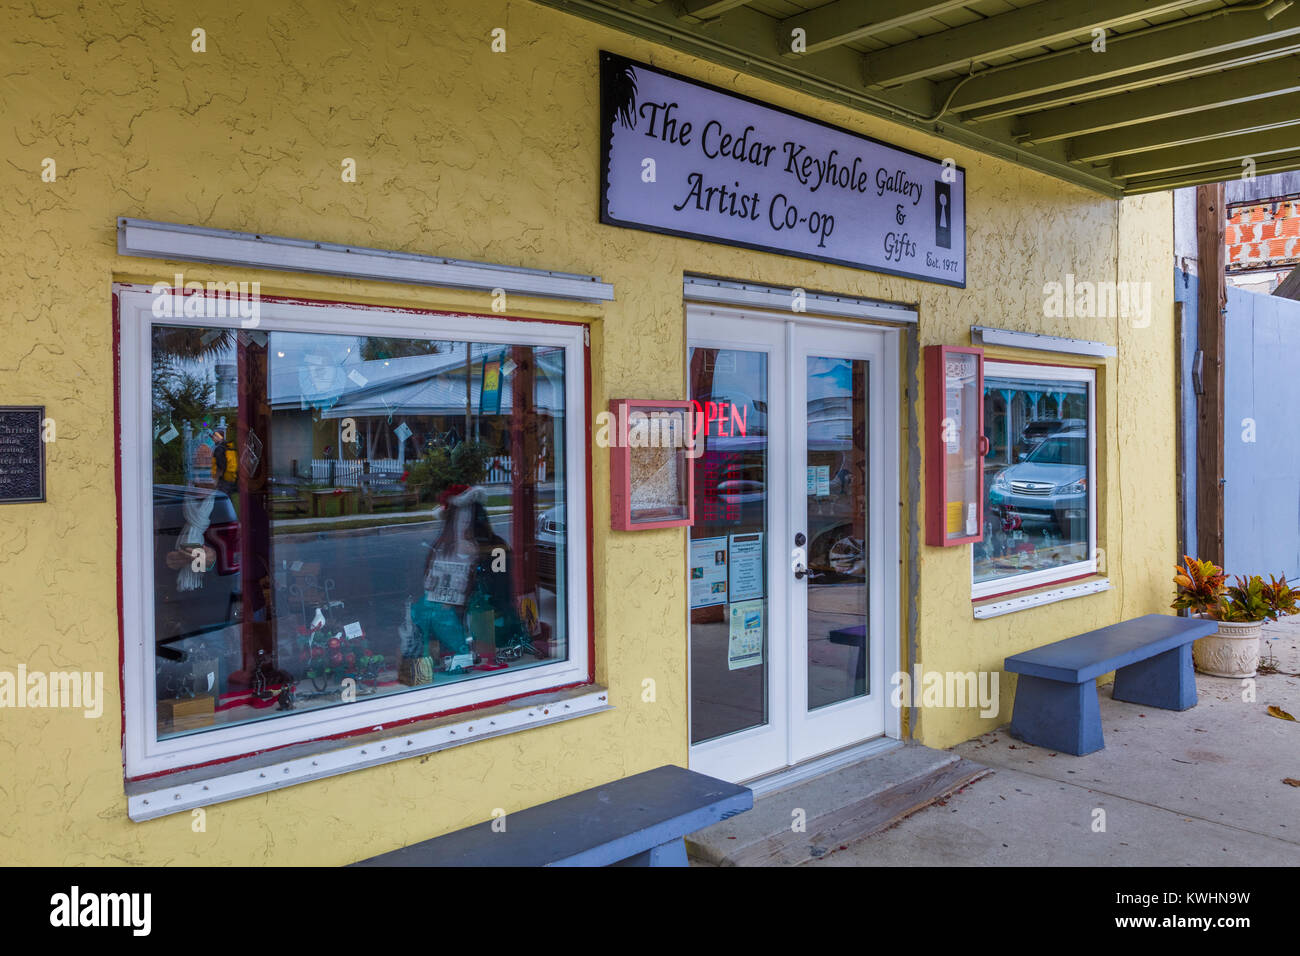 Art craft gallery in old Florida town of Cedar Key Florida in the United States - Stock Image